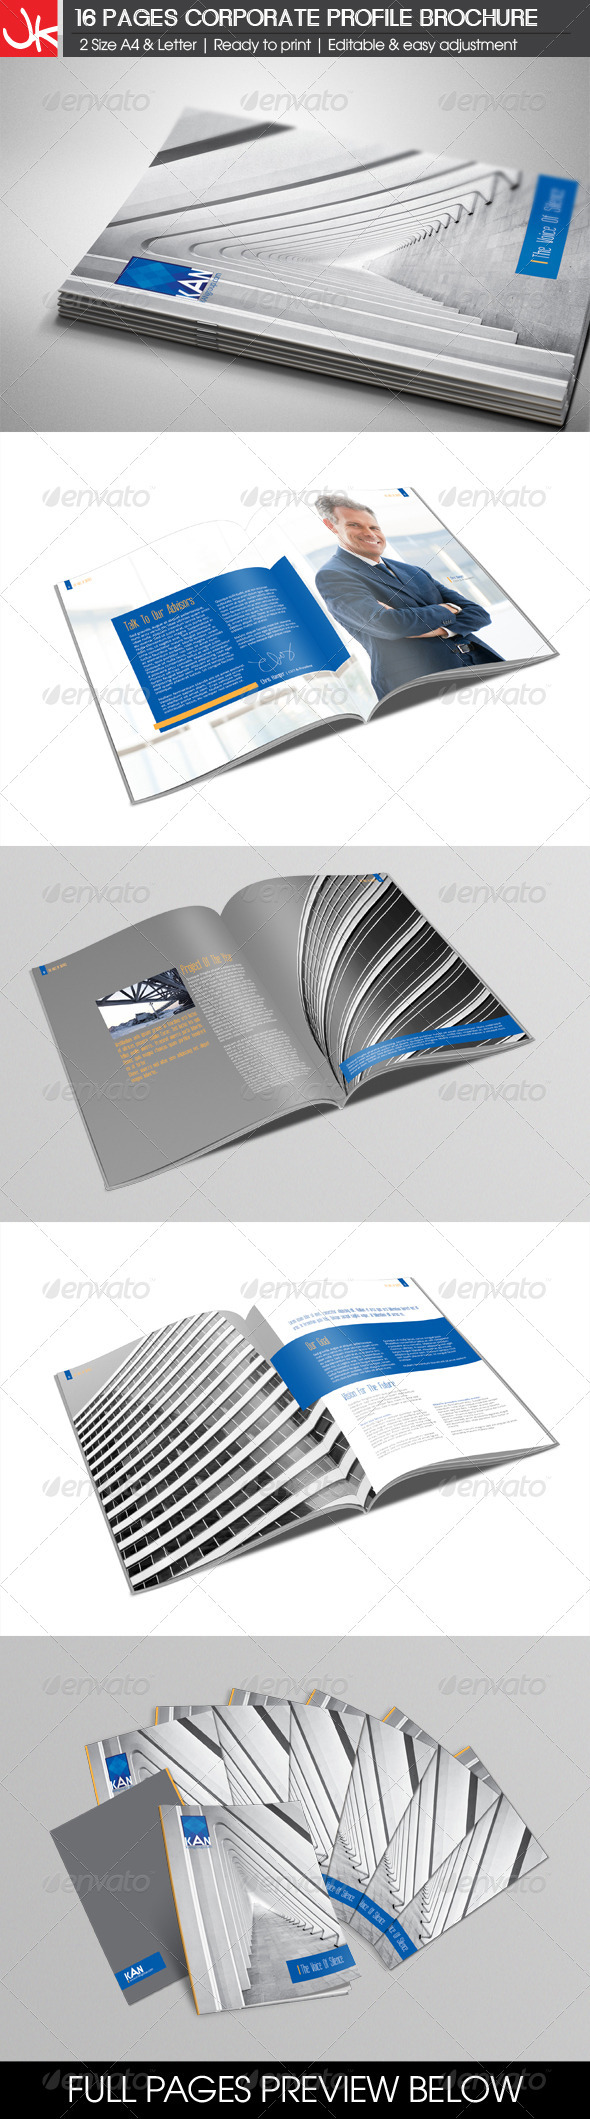 GraphicRiver 16 Pages Corporate Profile Brochure 3279007